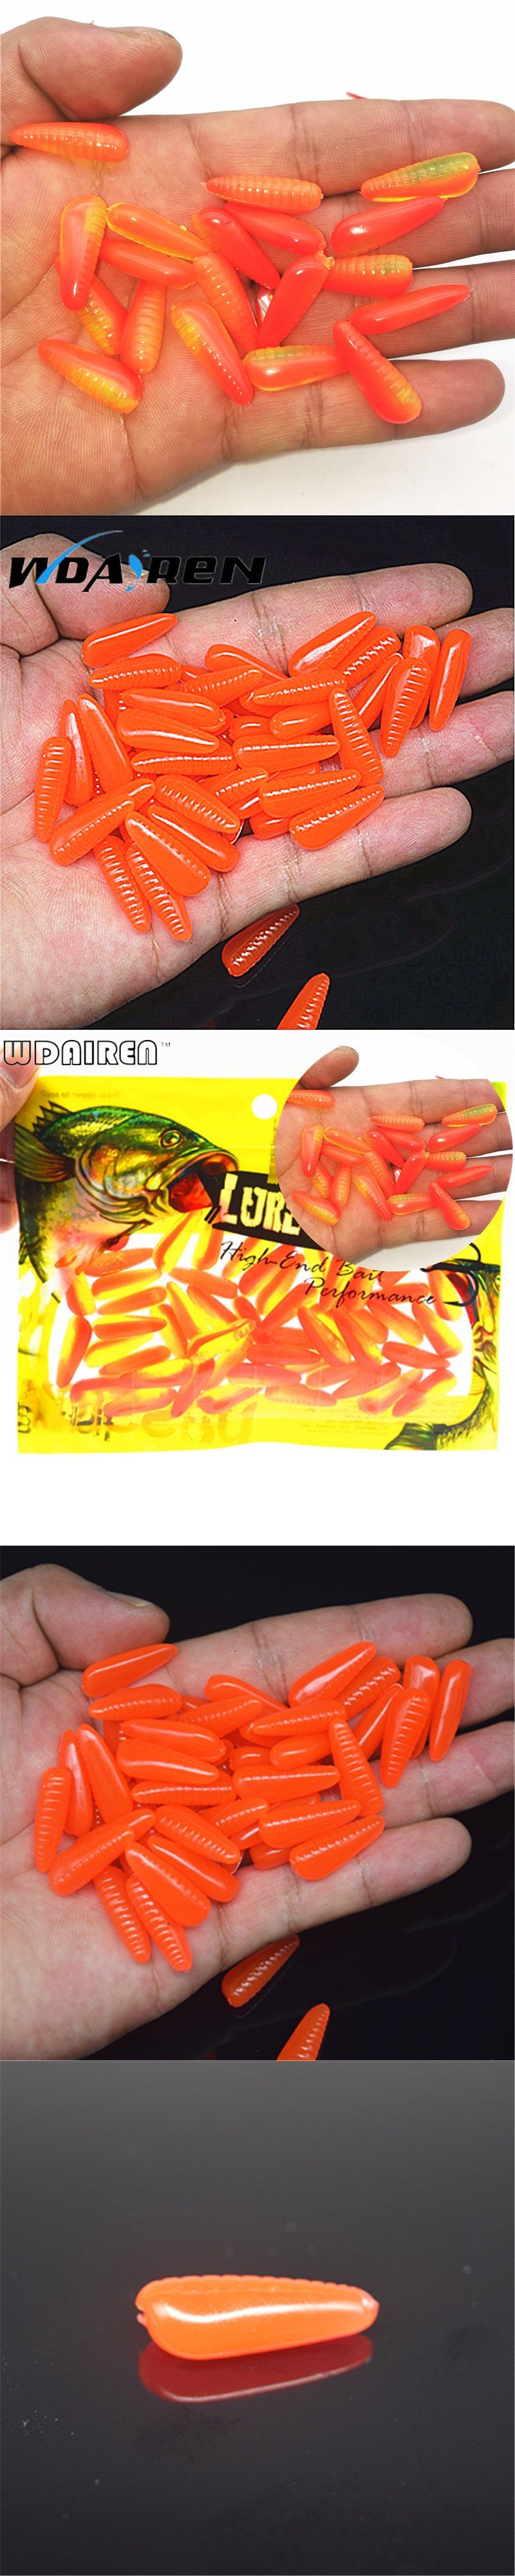 50Pcs/Lot 0.7grams 2.5cm plastic lures Artificial Fishing red worms ...